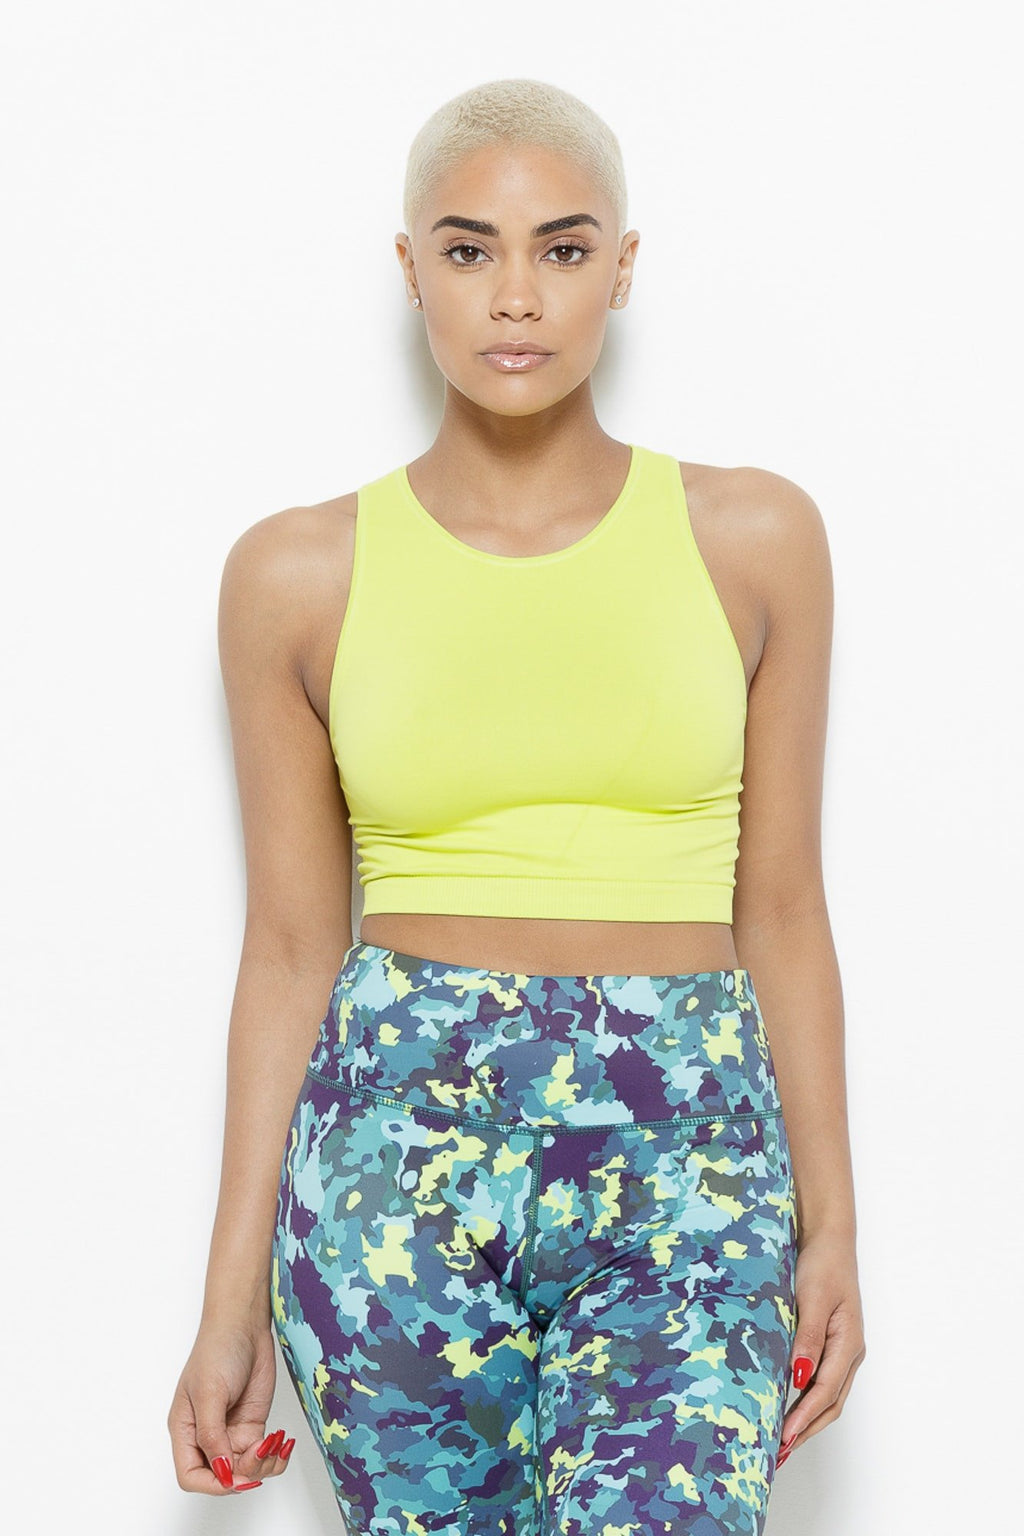 Serenity Crop Top-Chartreuse Clothing Fair Shade SM CHARTREUSE Sorbtek